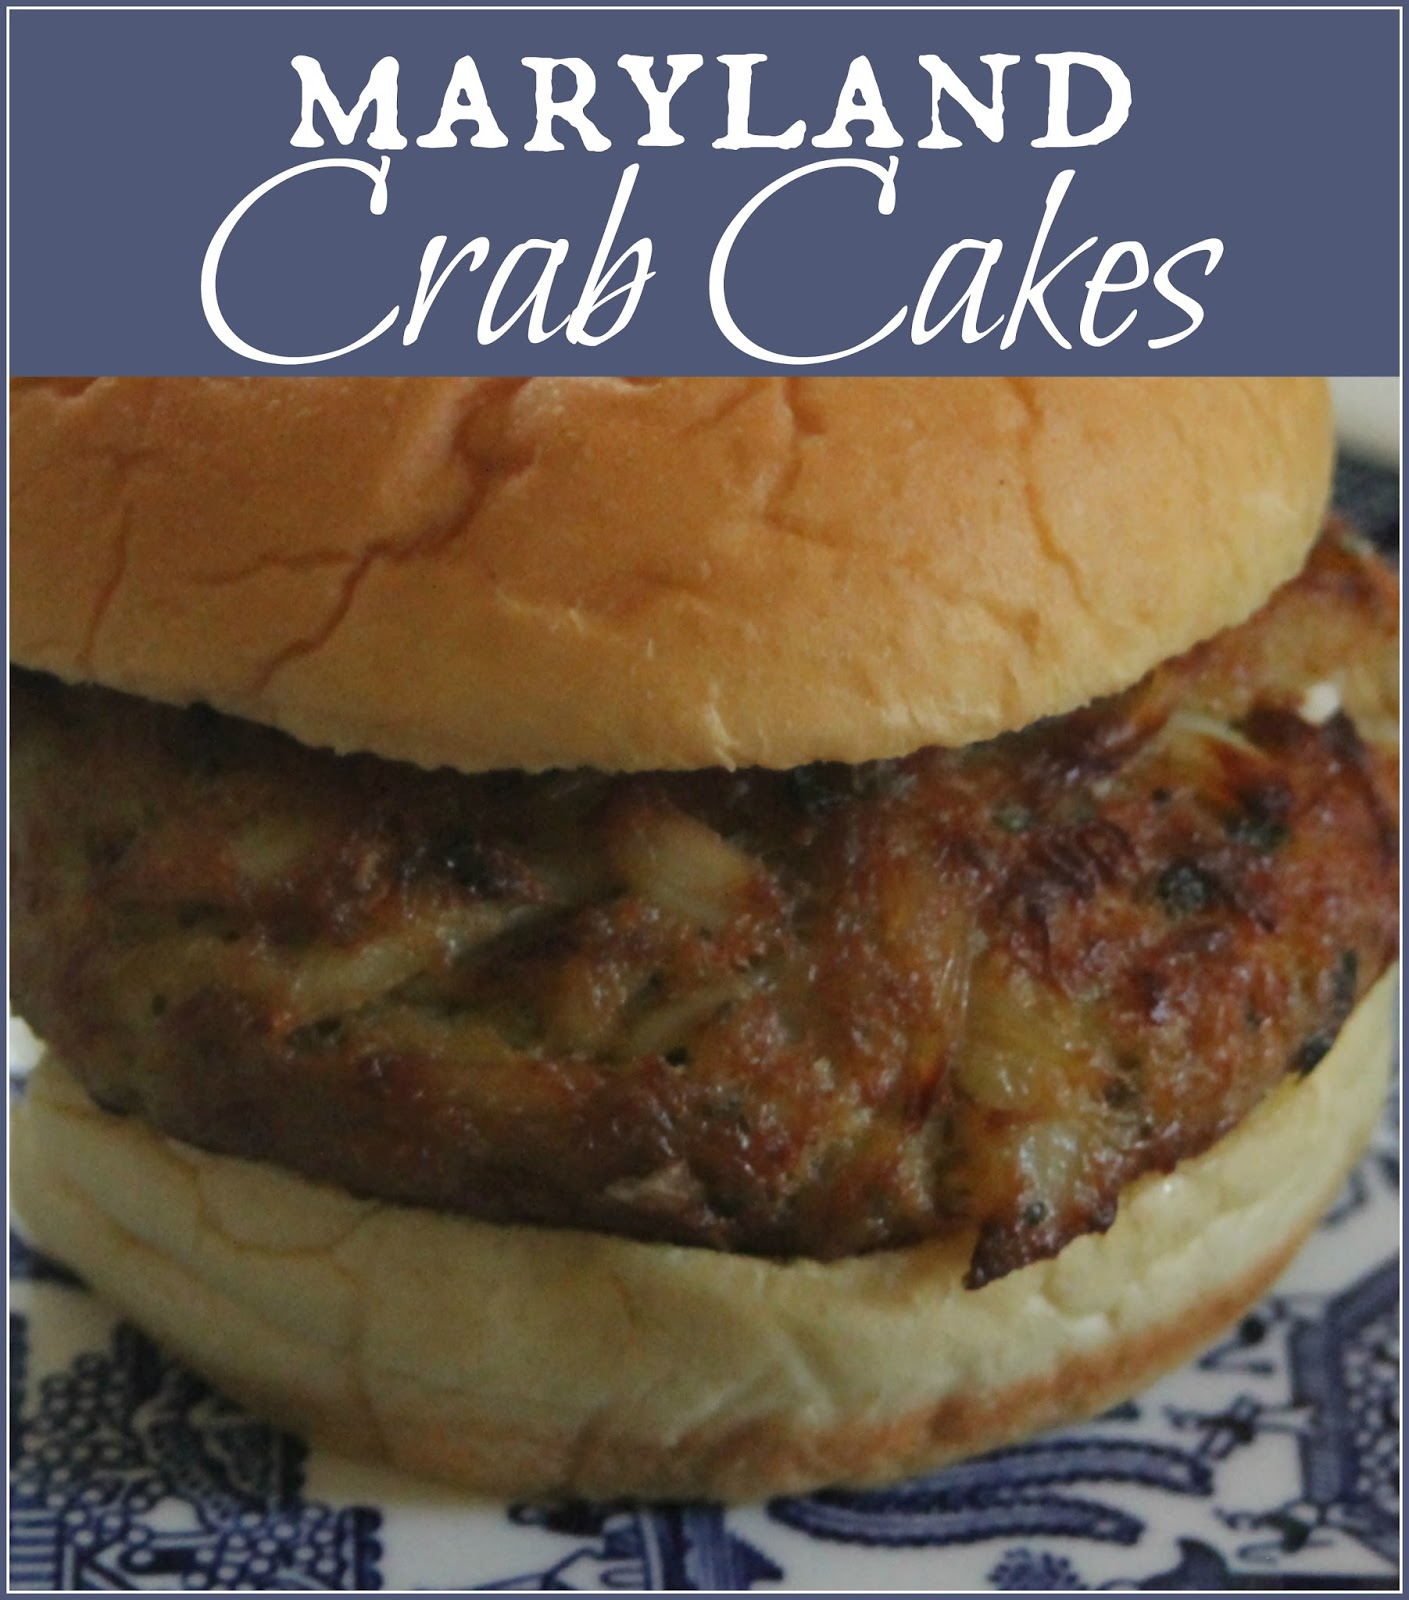 Thinking About Home: Sunday Snapshots: Crab Cakes Instead ...